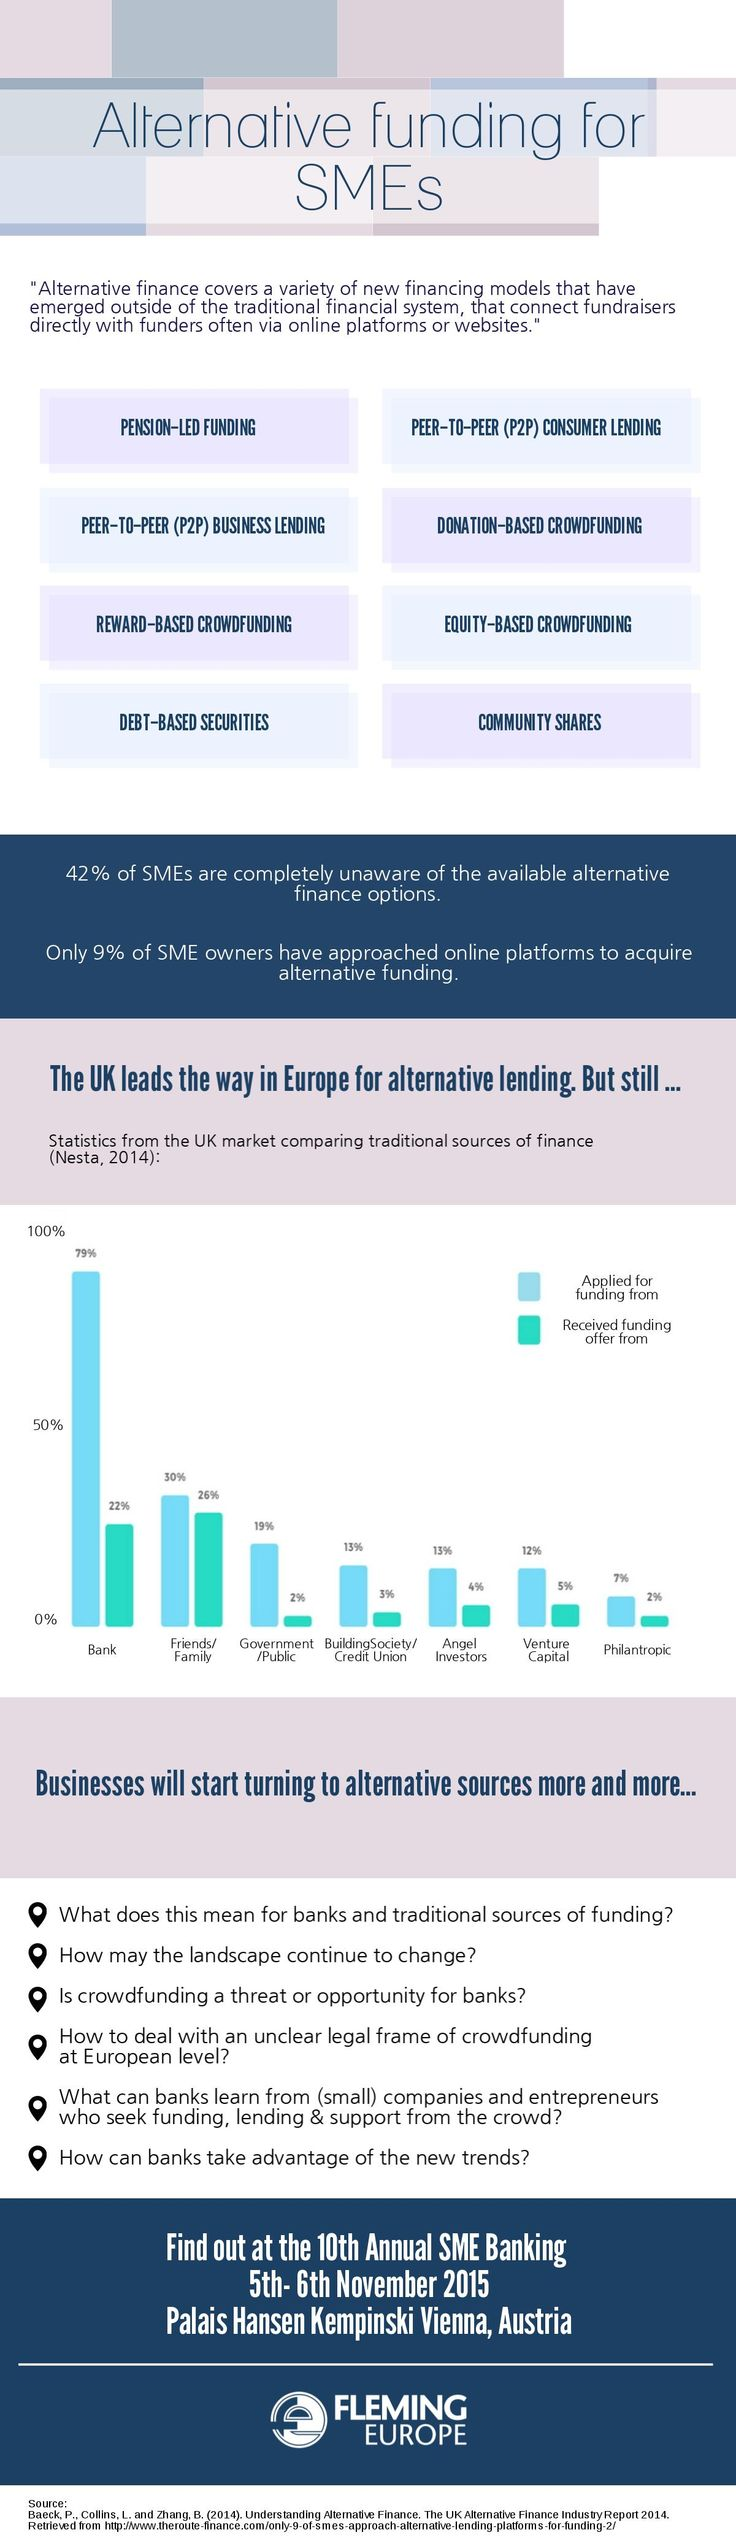 Alternative funding has turned to be a viable source of finance for SMEs. The UK leads the way in Europe, but what is the real situation with the alternative funding in Europe? Find out in the infographic below.